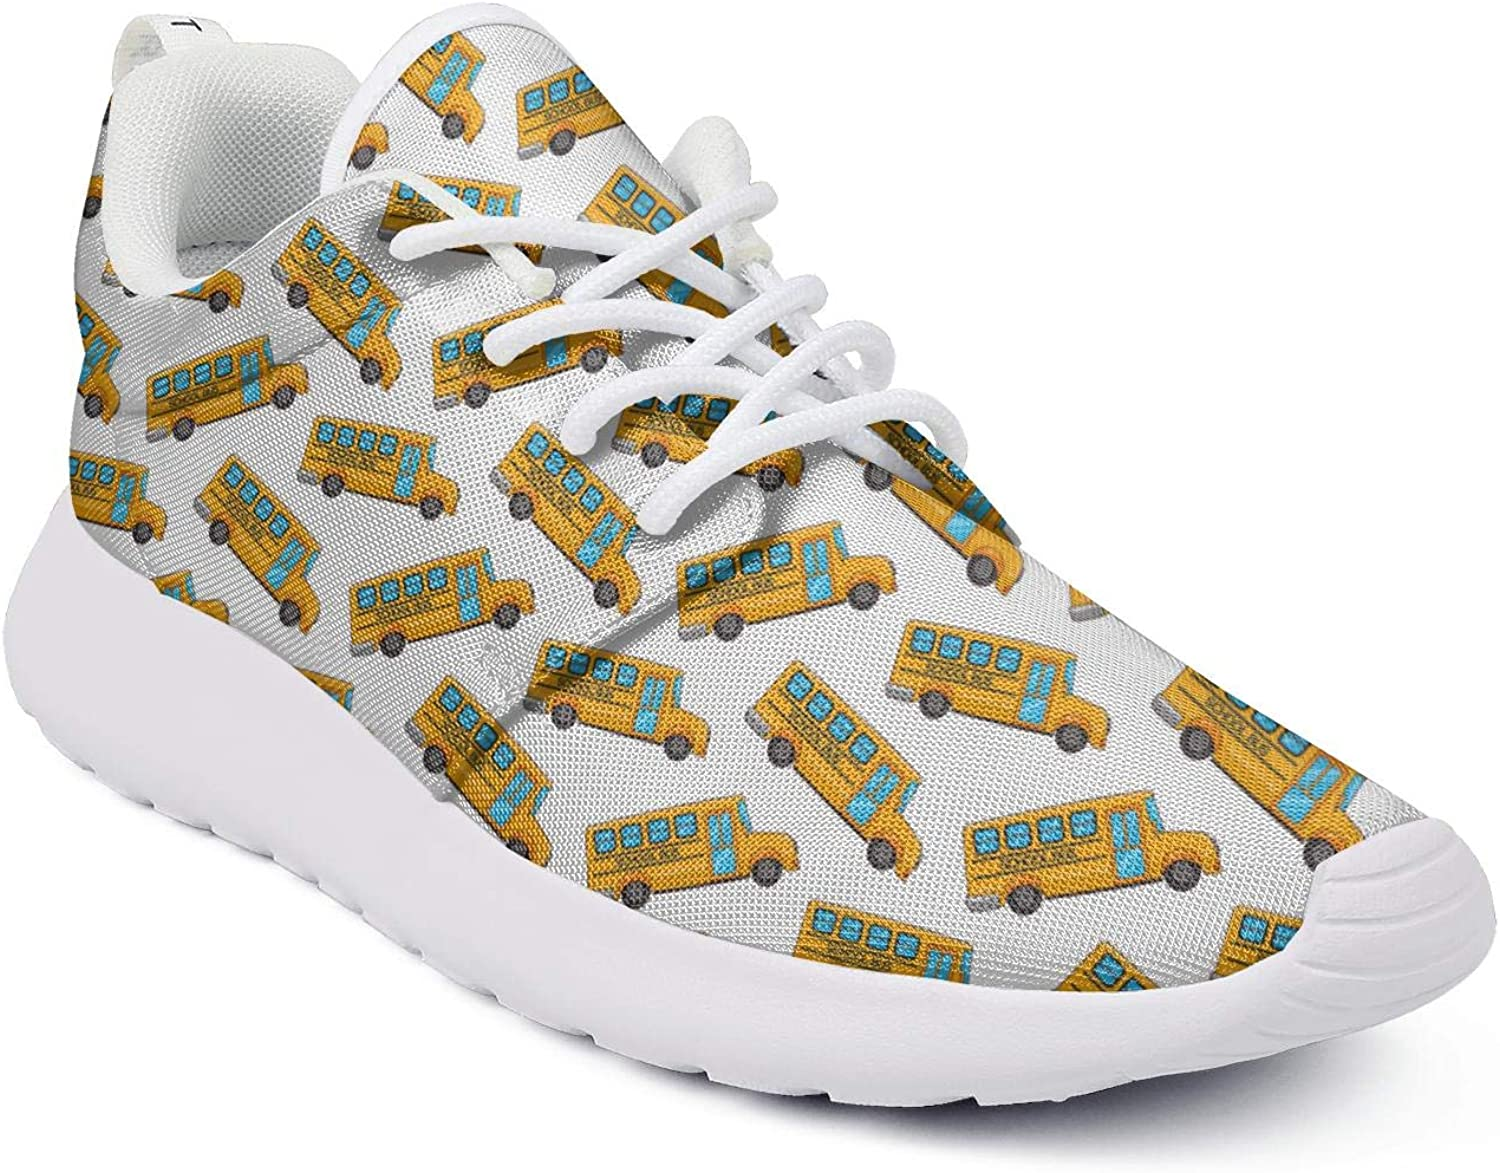 Womens Athleisure Sneakers School Bus Wallpaper Ultra Lightweight Breathable Mesh Christmas Fashion Shoes for Ladies